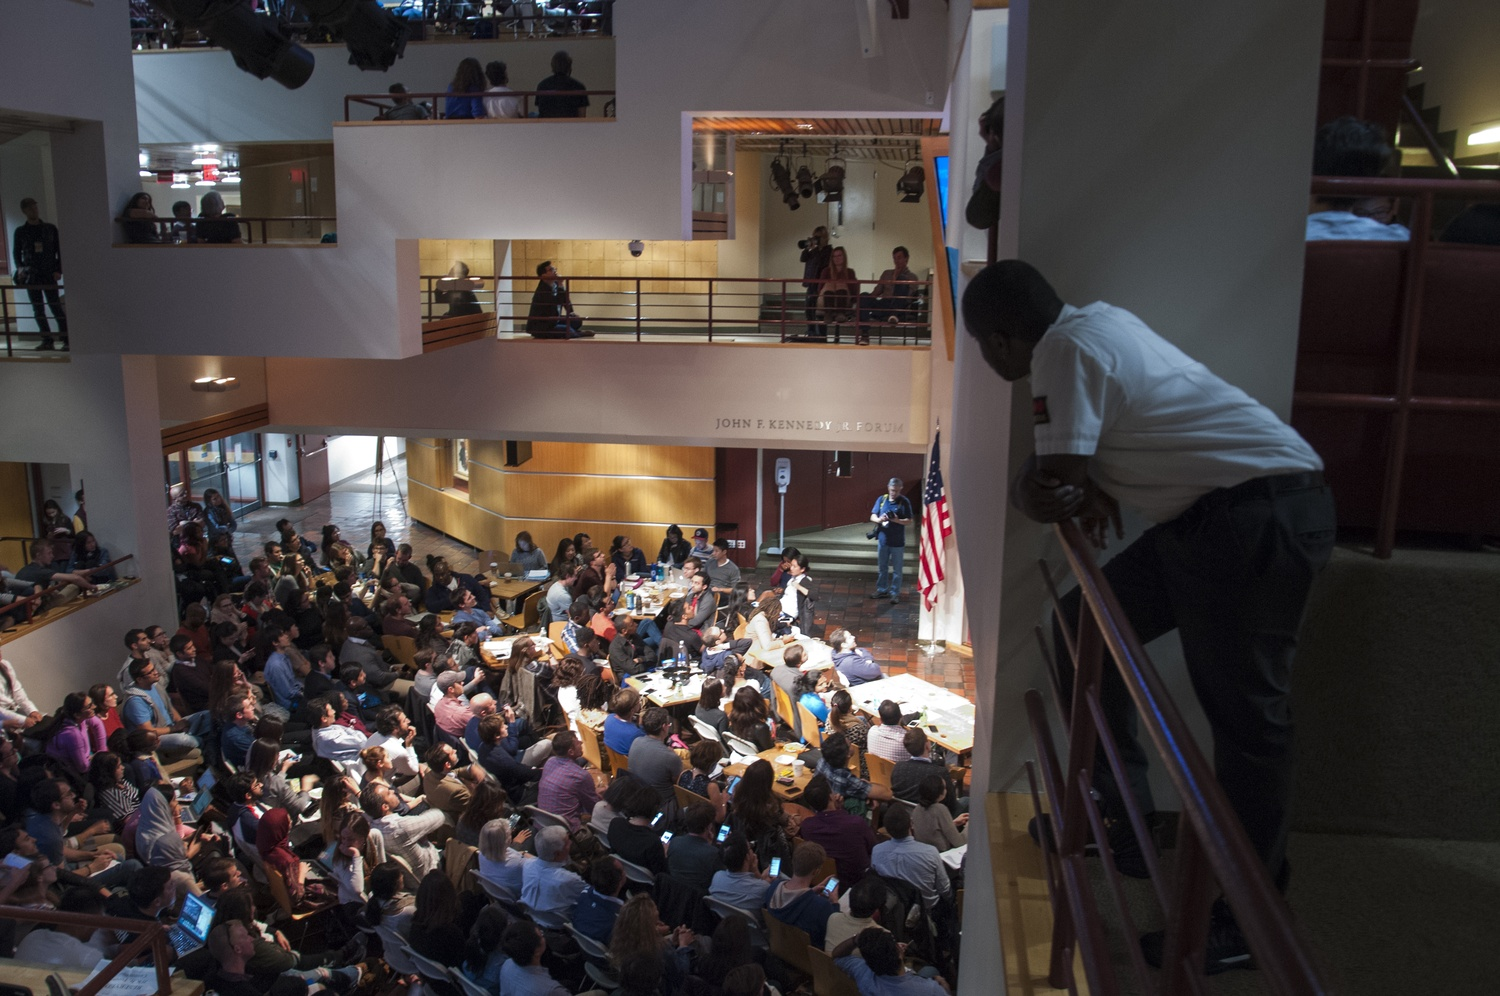 Harvard affiliates watched the first presidential debate last week.